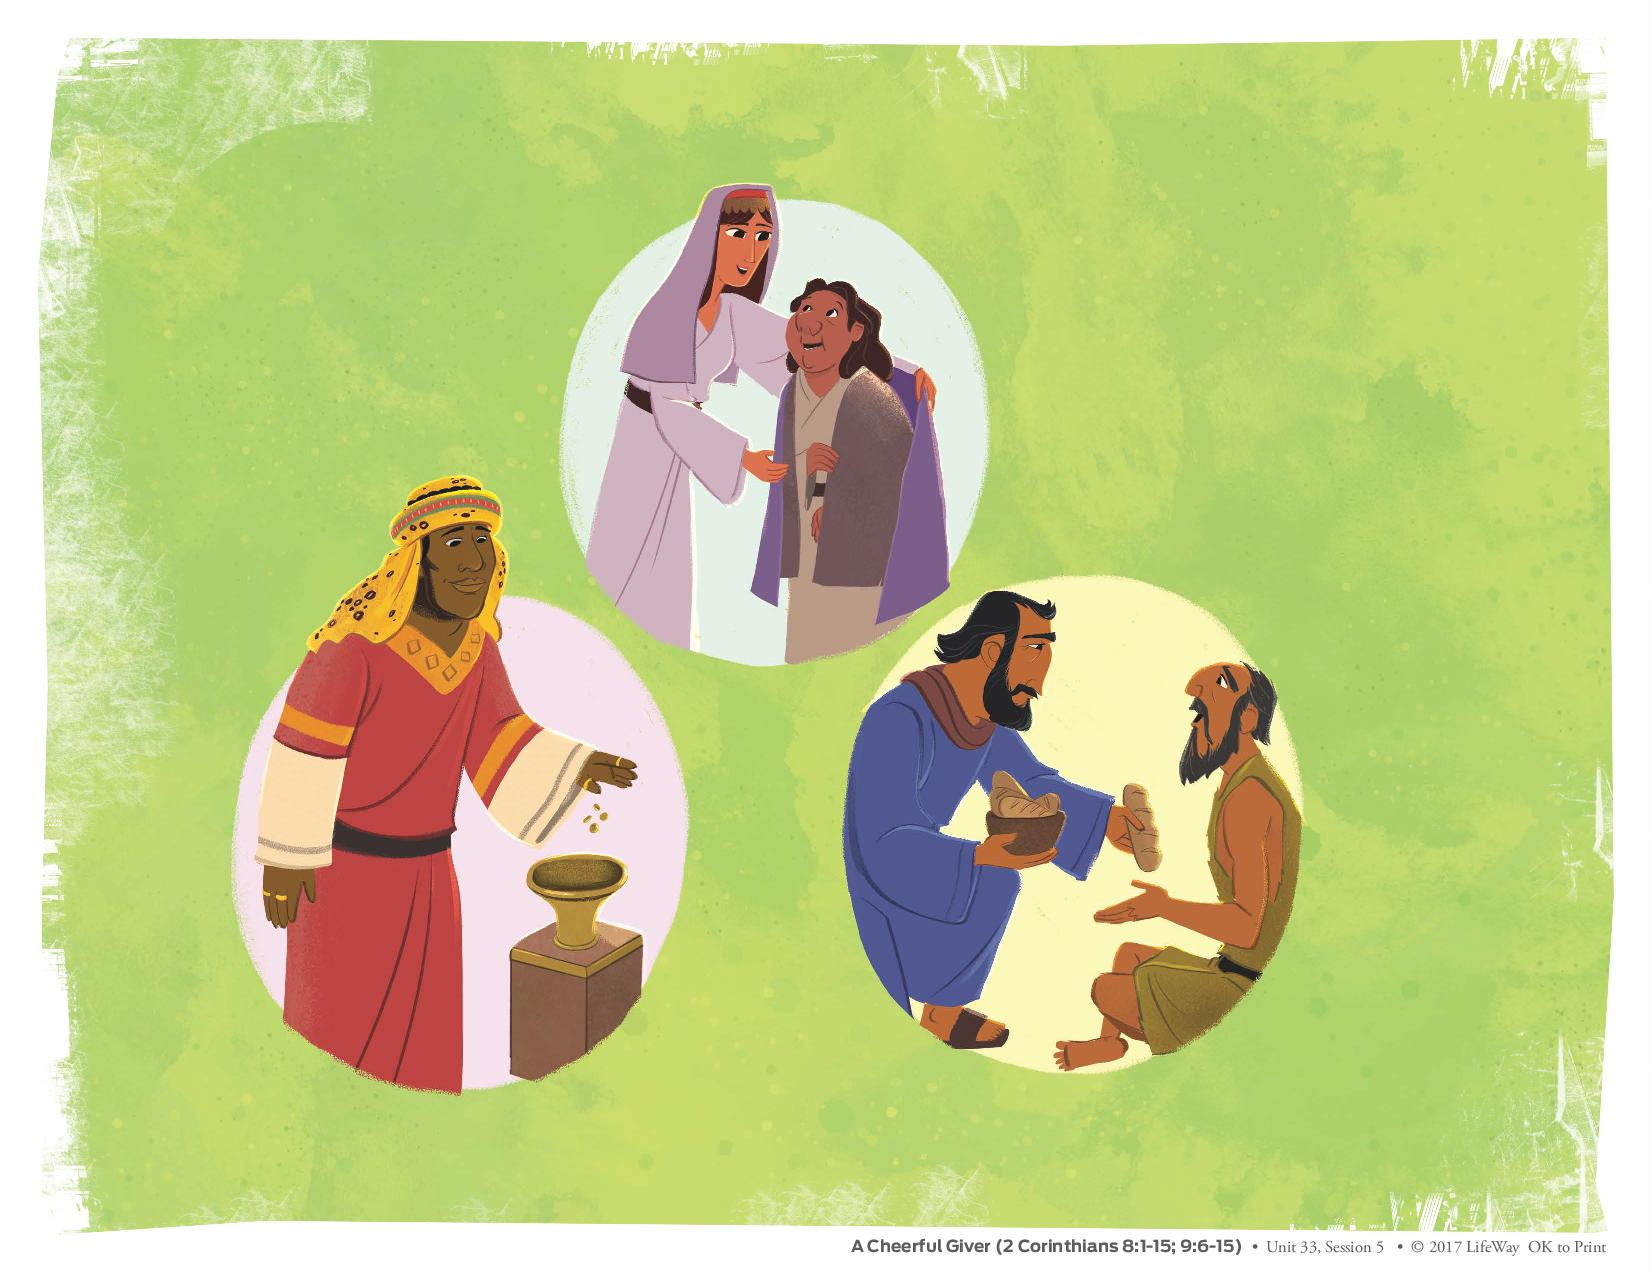 33_5_BibleStoryPictures-page-001.jpg